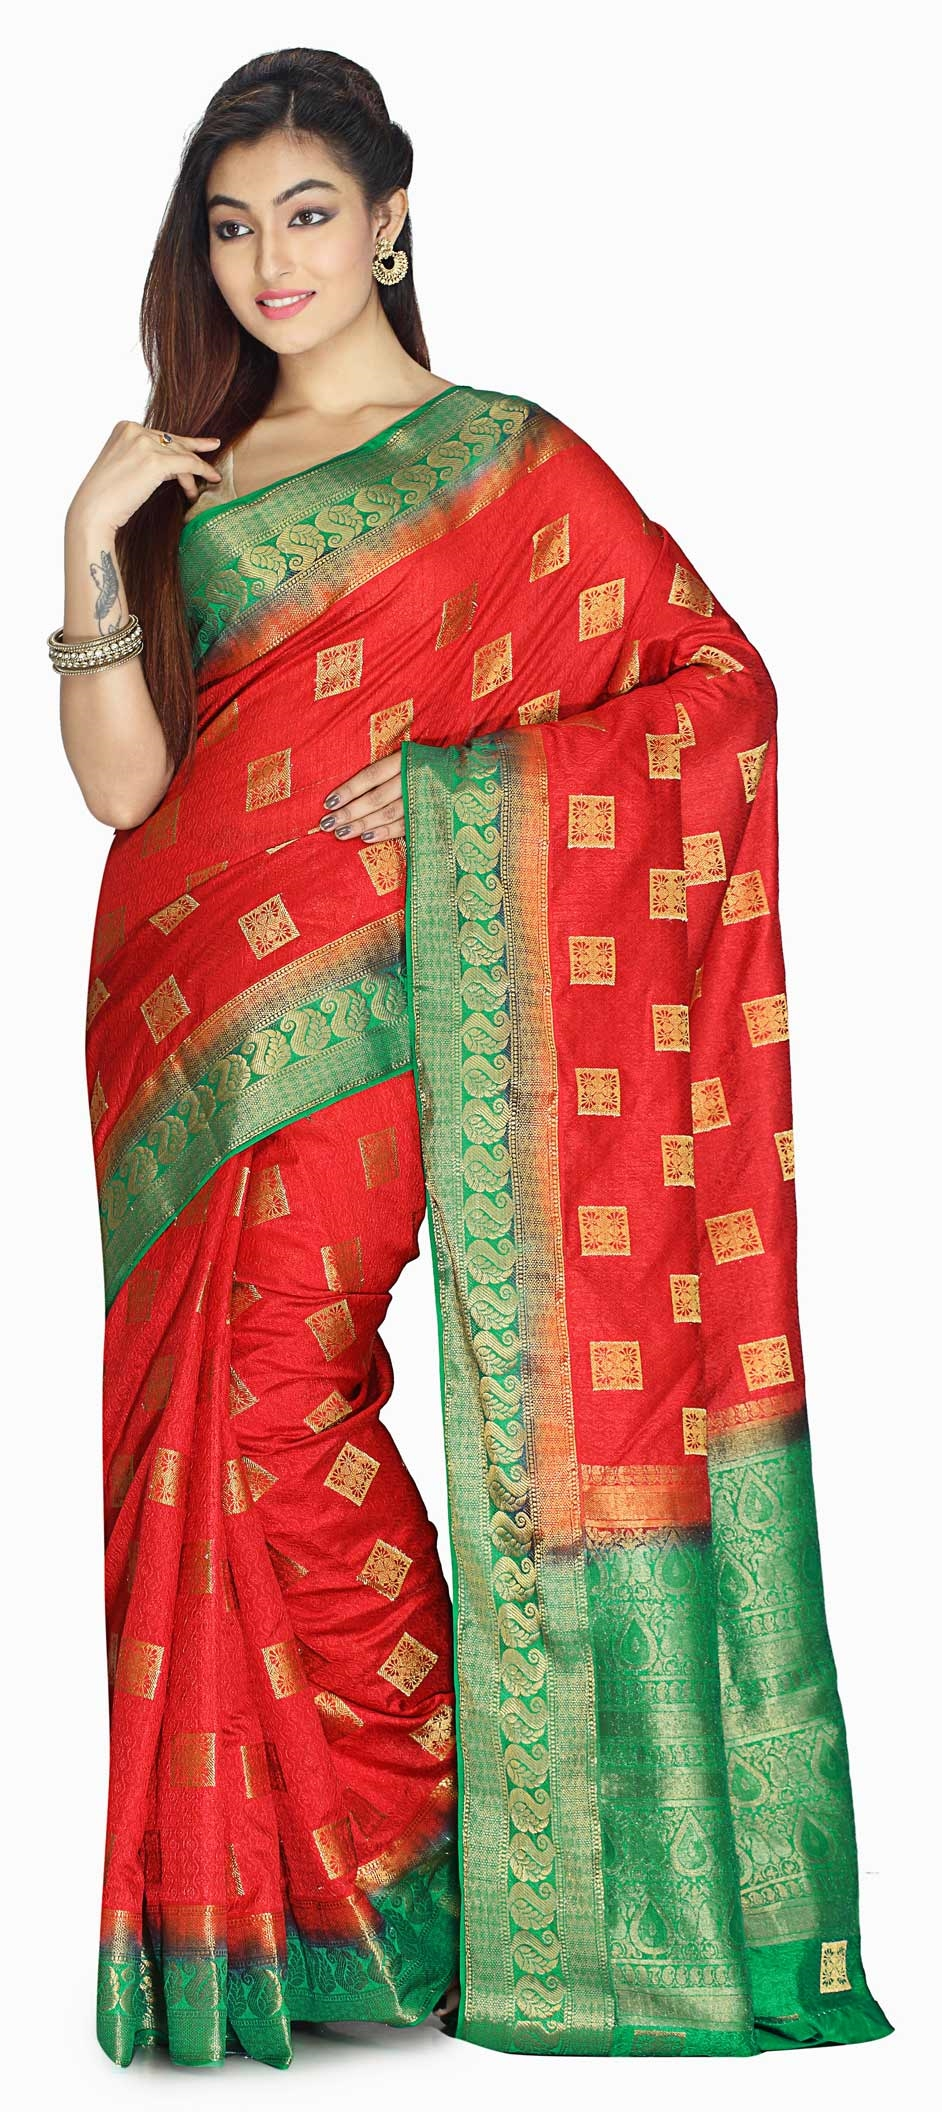 758428: Red and Maroon color family Party Wear Sarees with matching ...